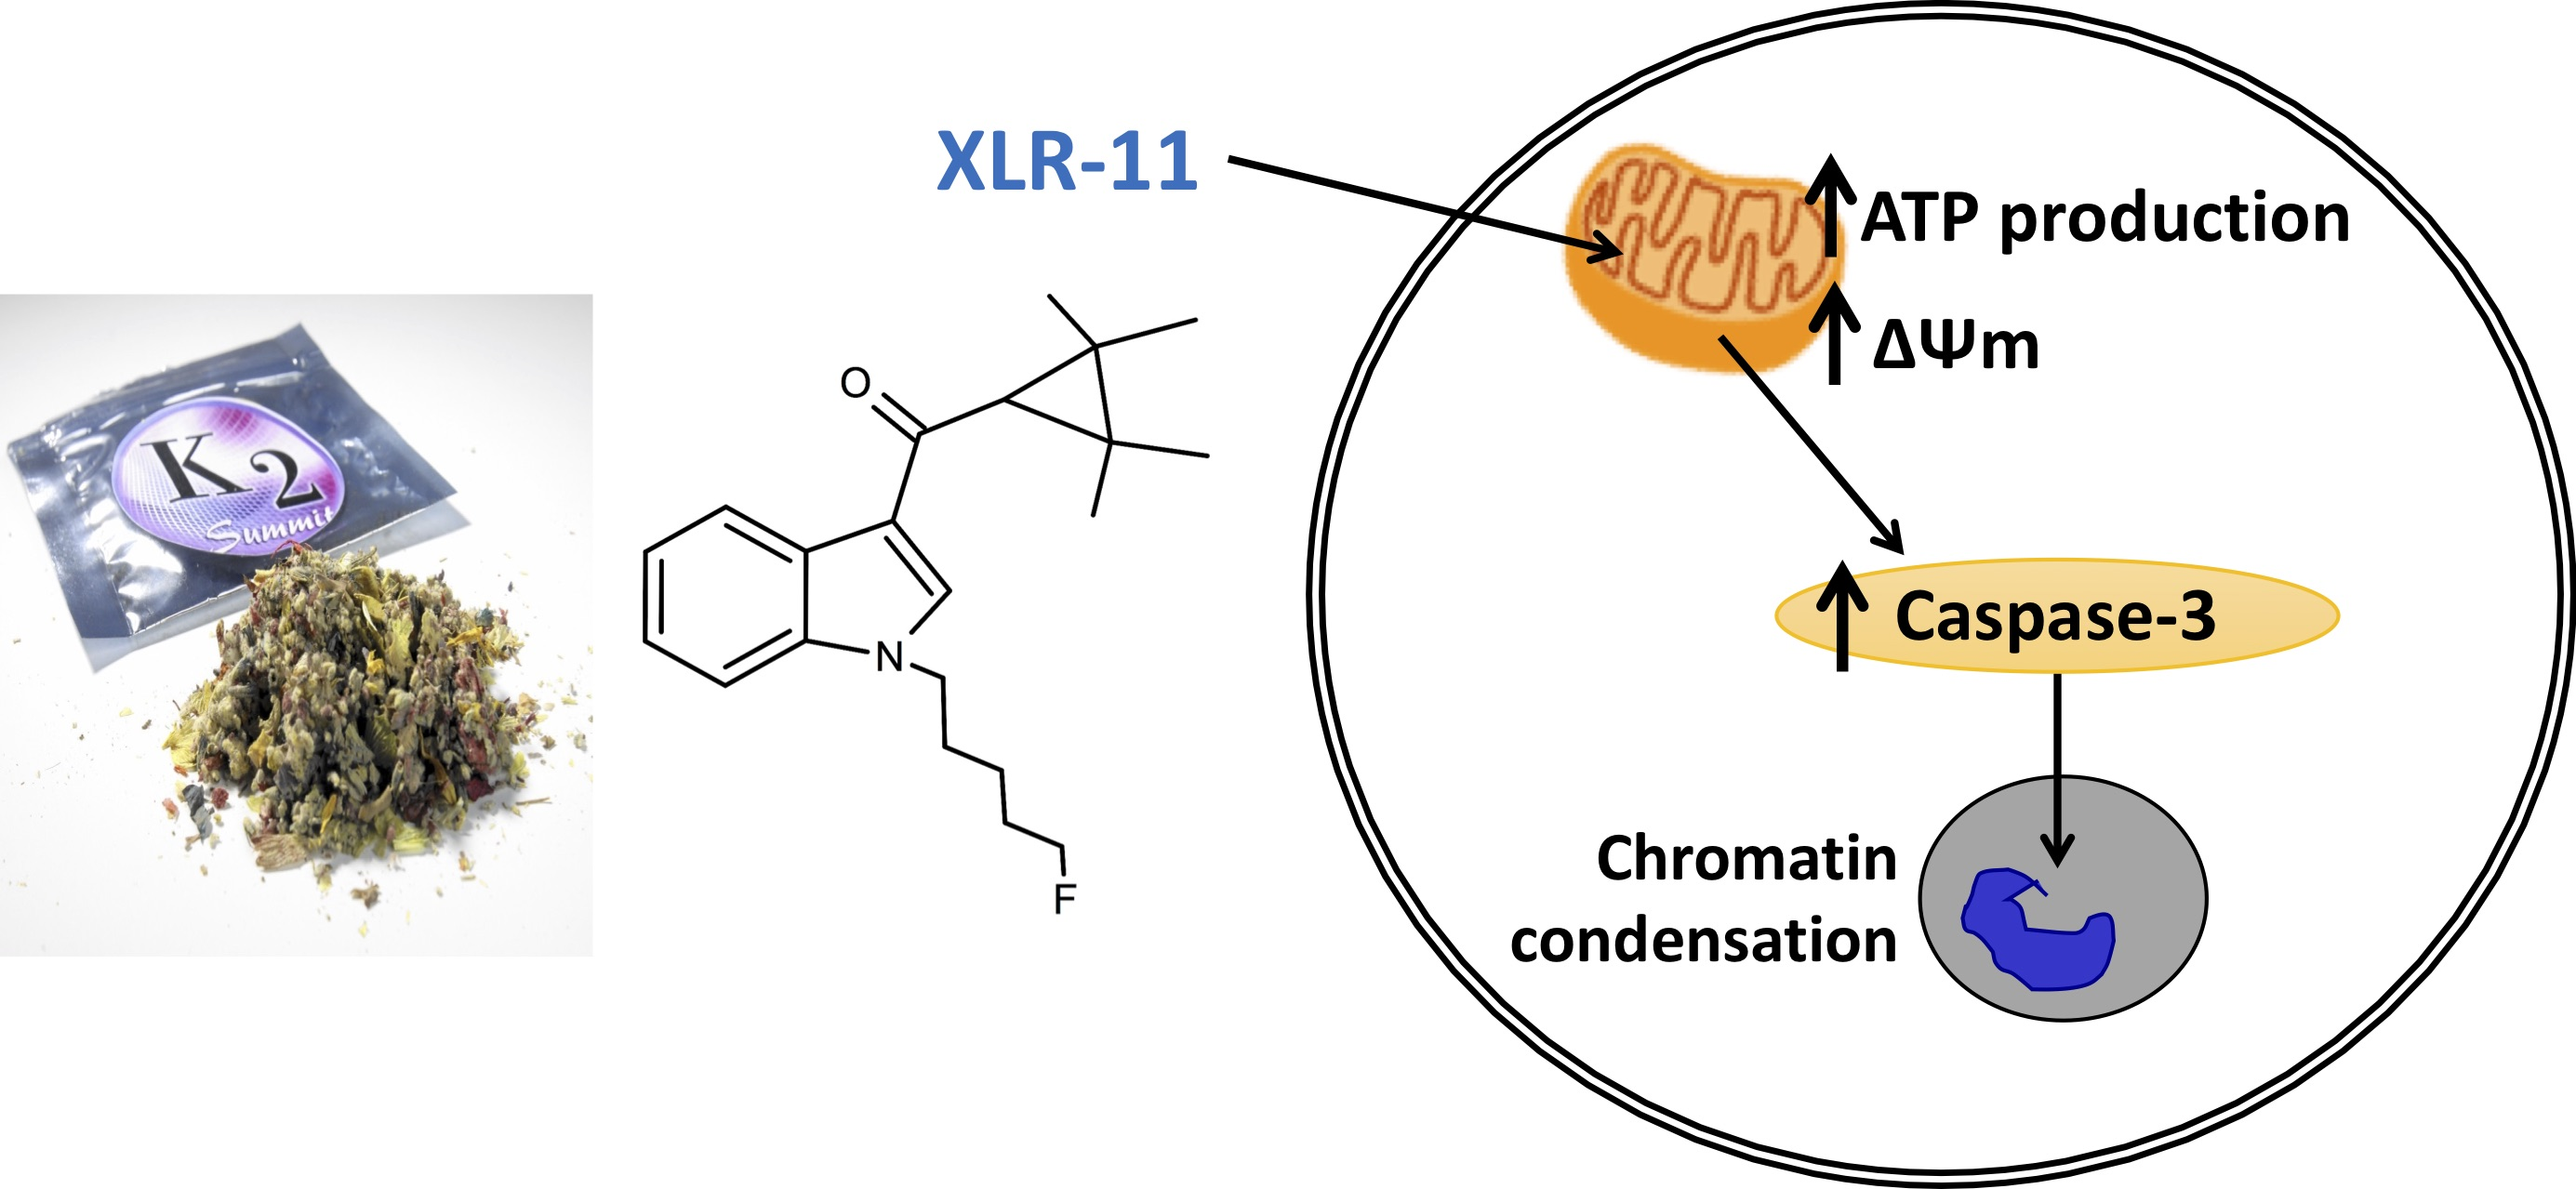 The synthetic cannabinoid XLR-11 and the impaired control of mitochondrial function by the endocannabinoid system as its underlying mechanism of nephrotoxicity